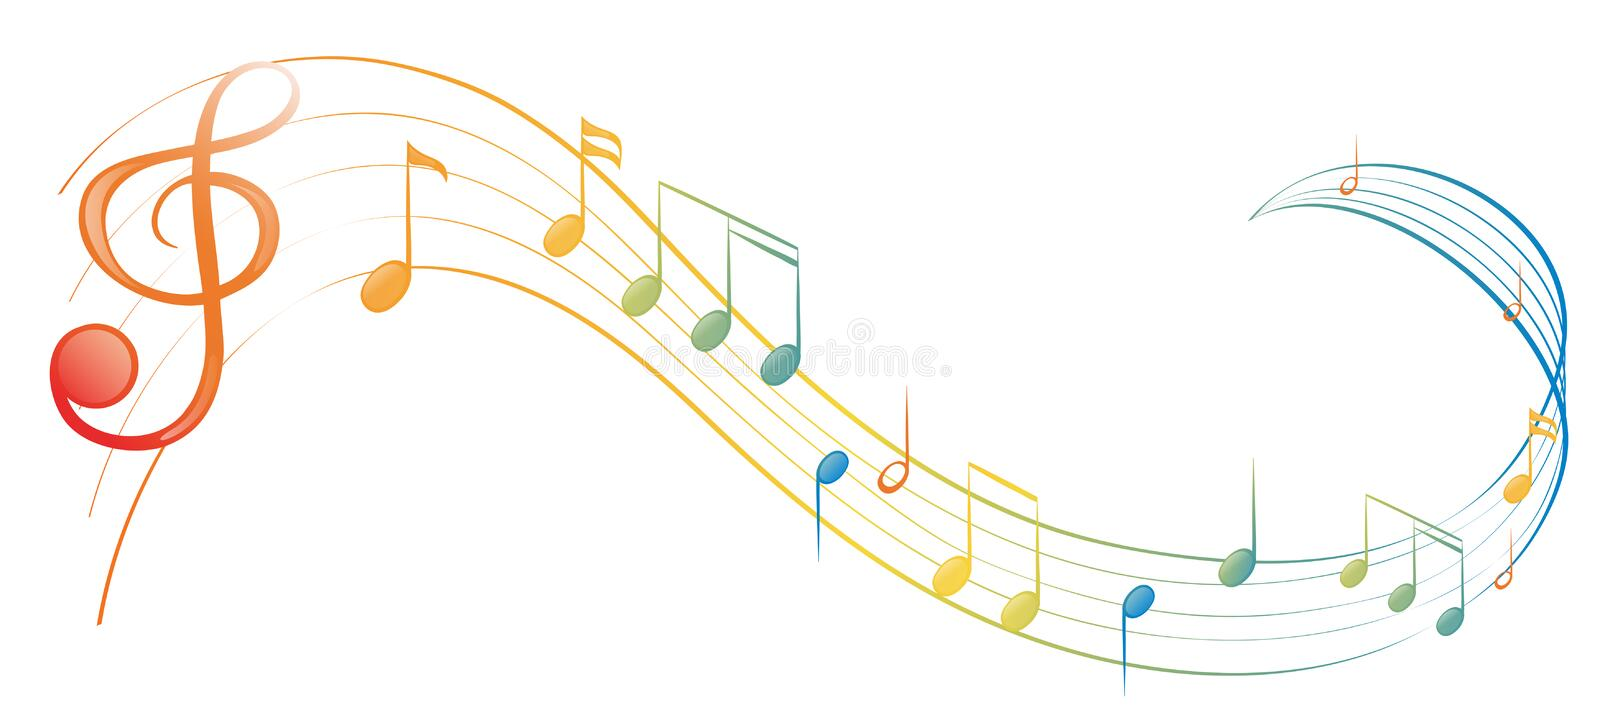 A music note stock illustration